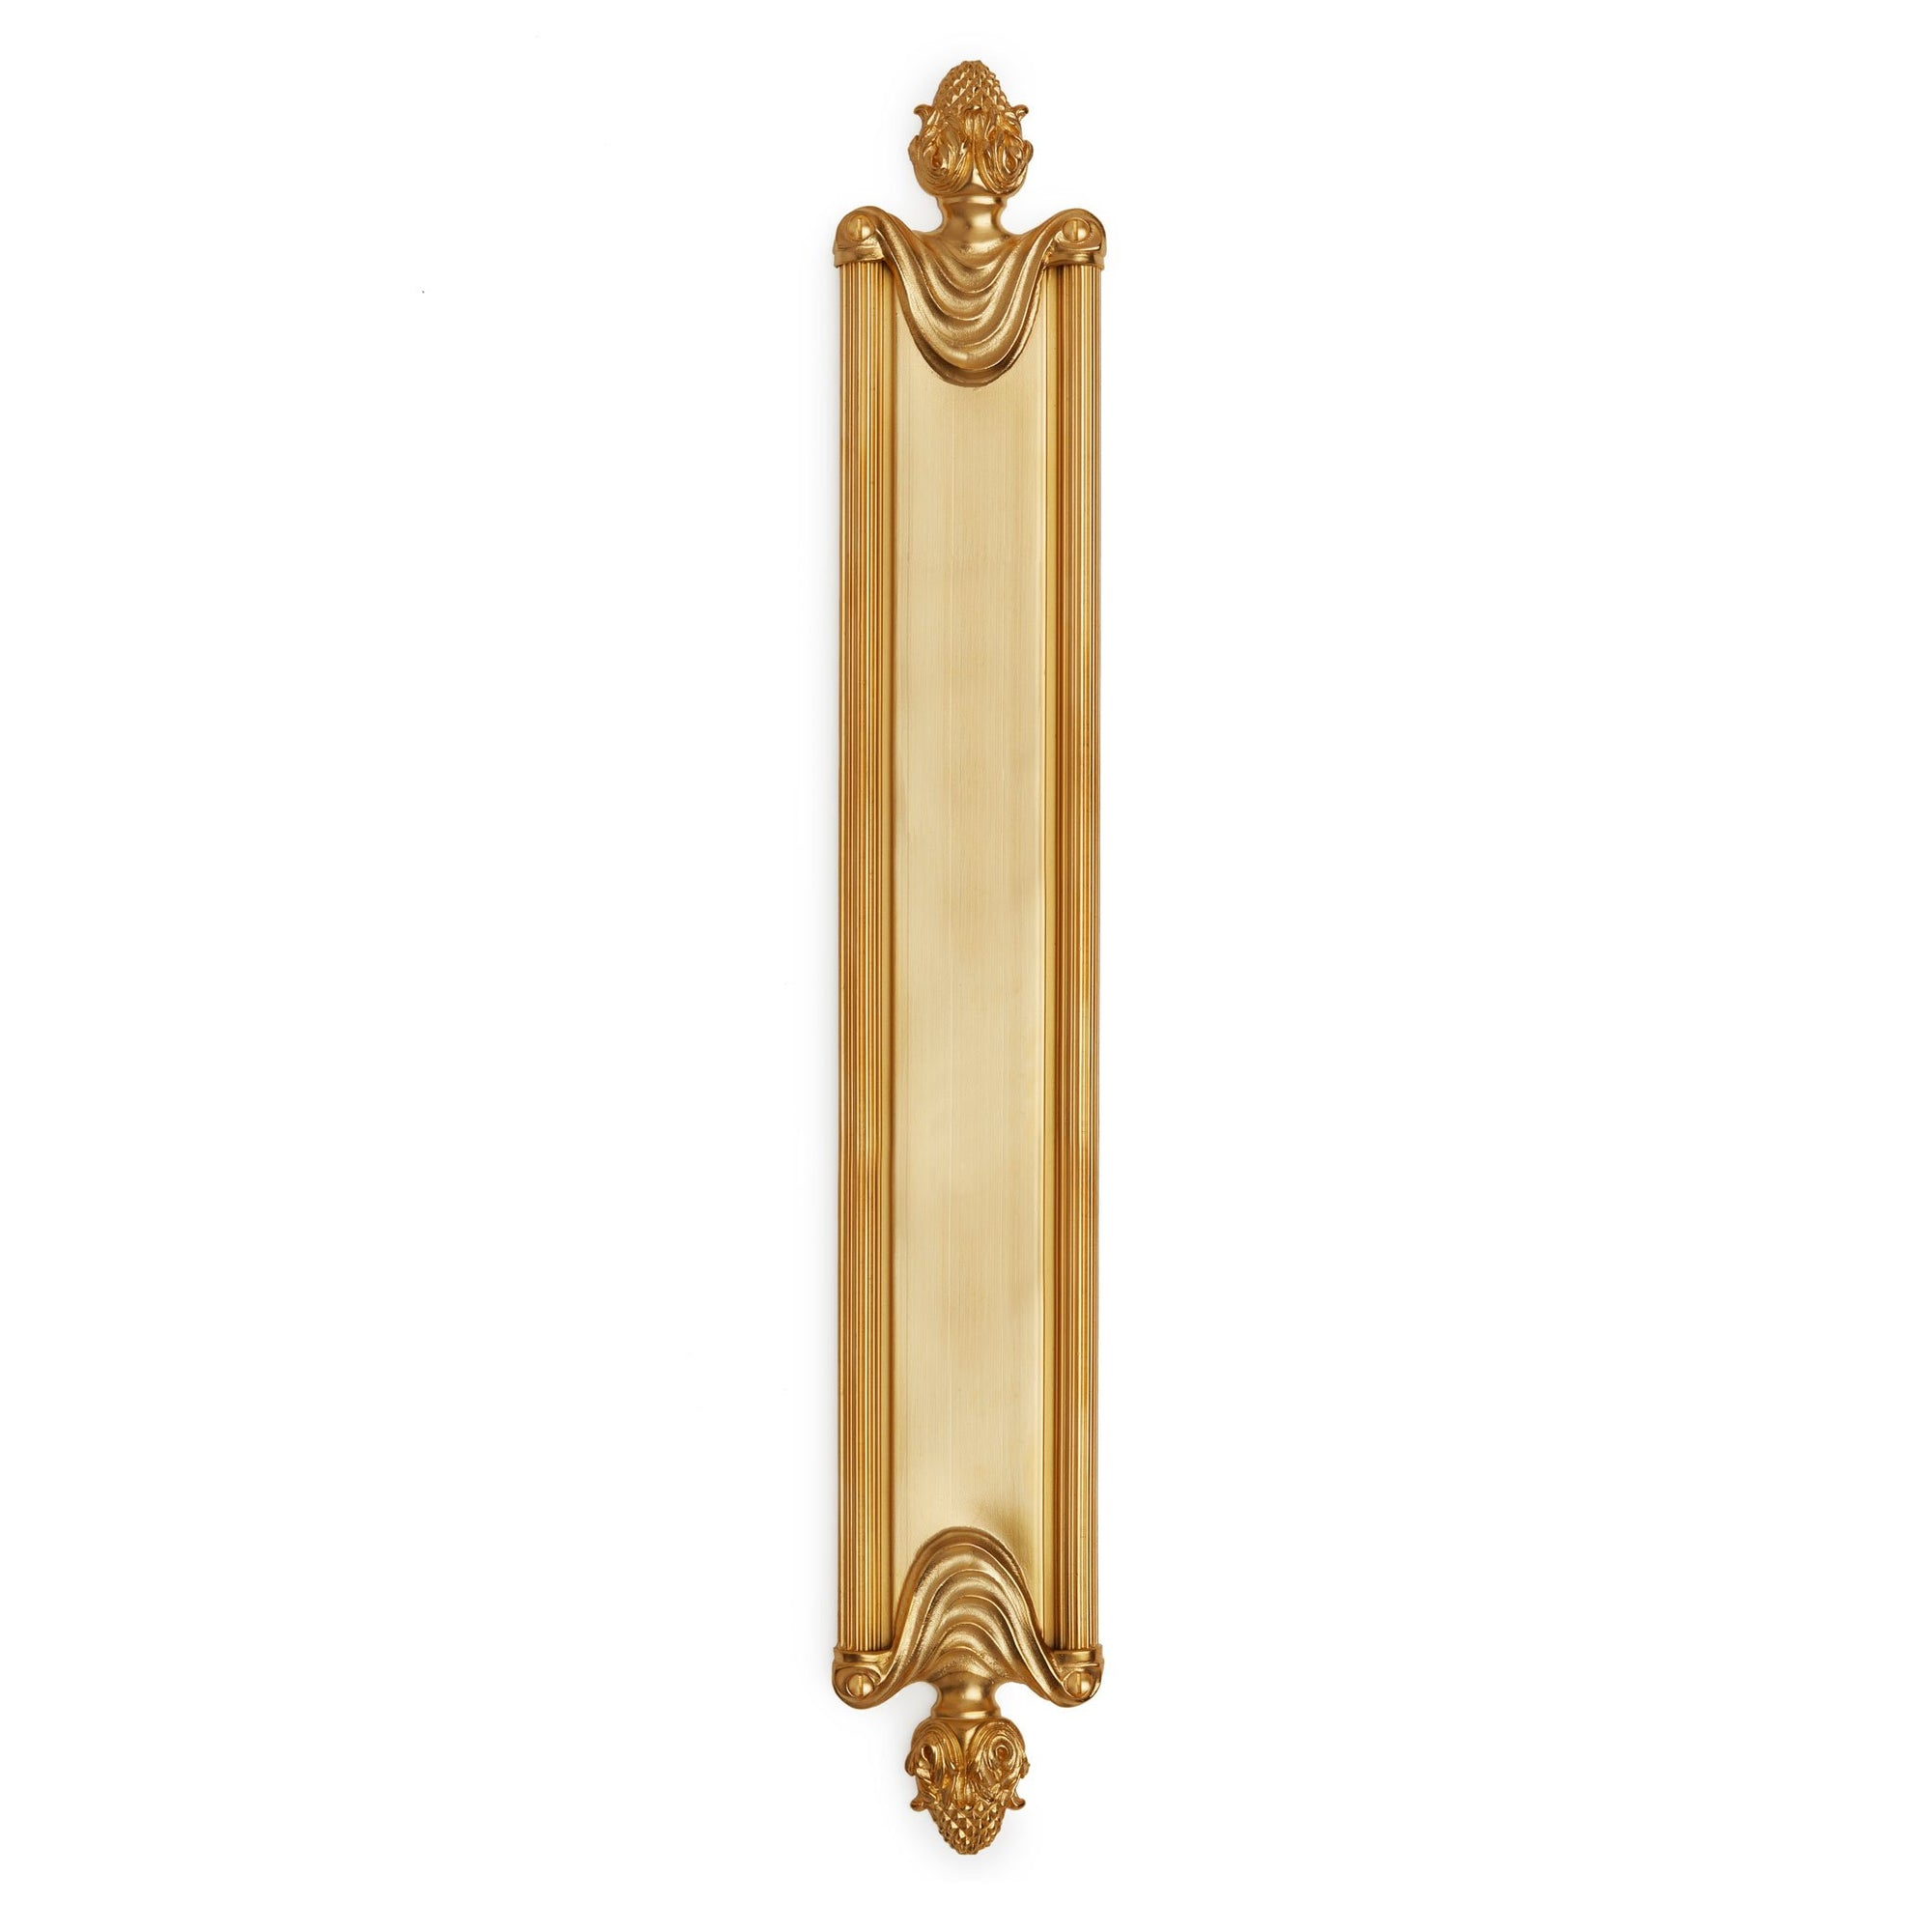 1110-21-GP Sherle Wagner International Grecian Push Plate in Gold Plate metal finish